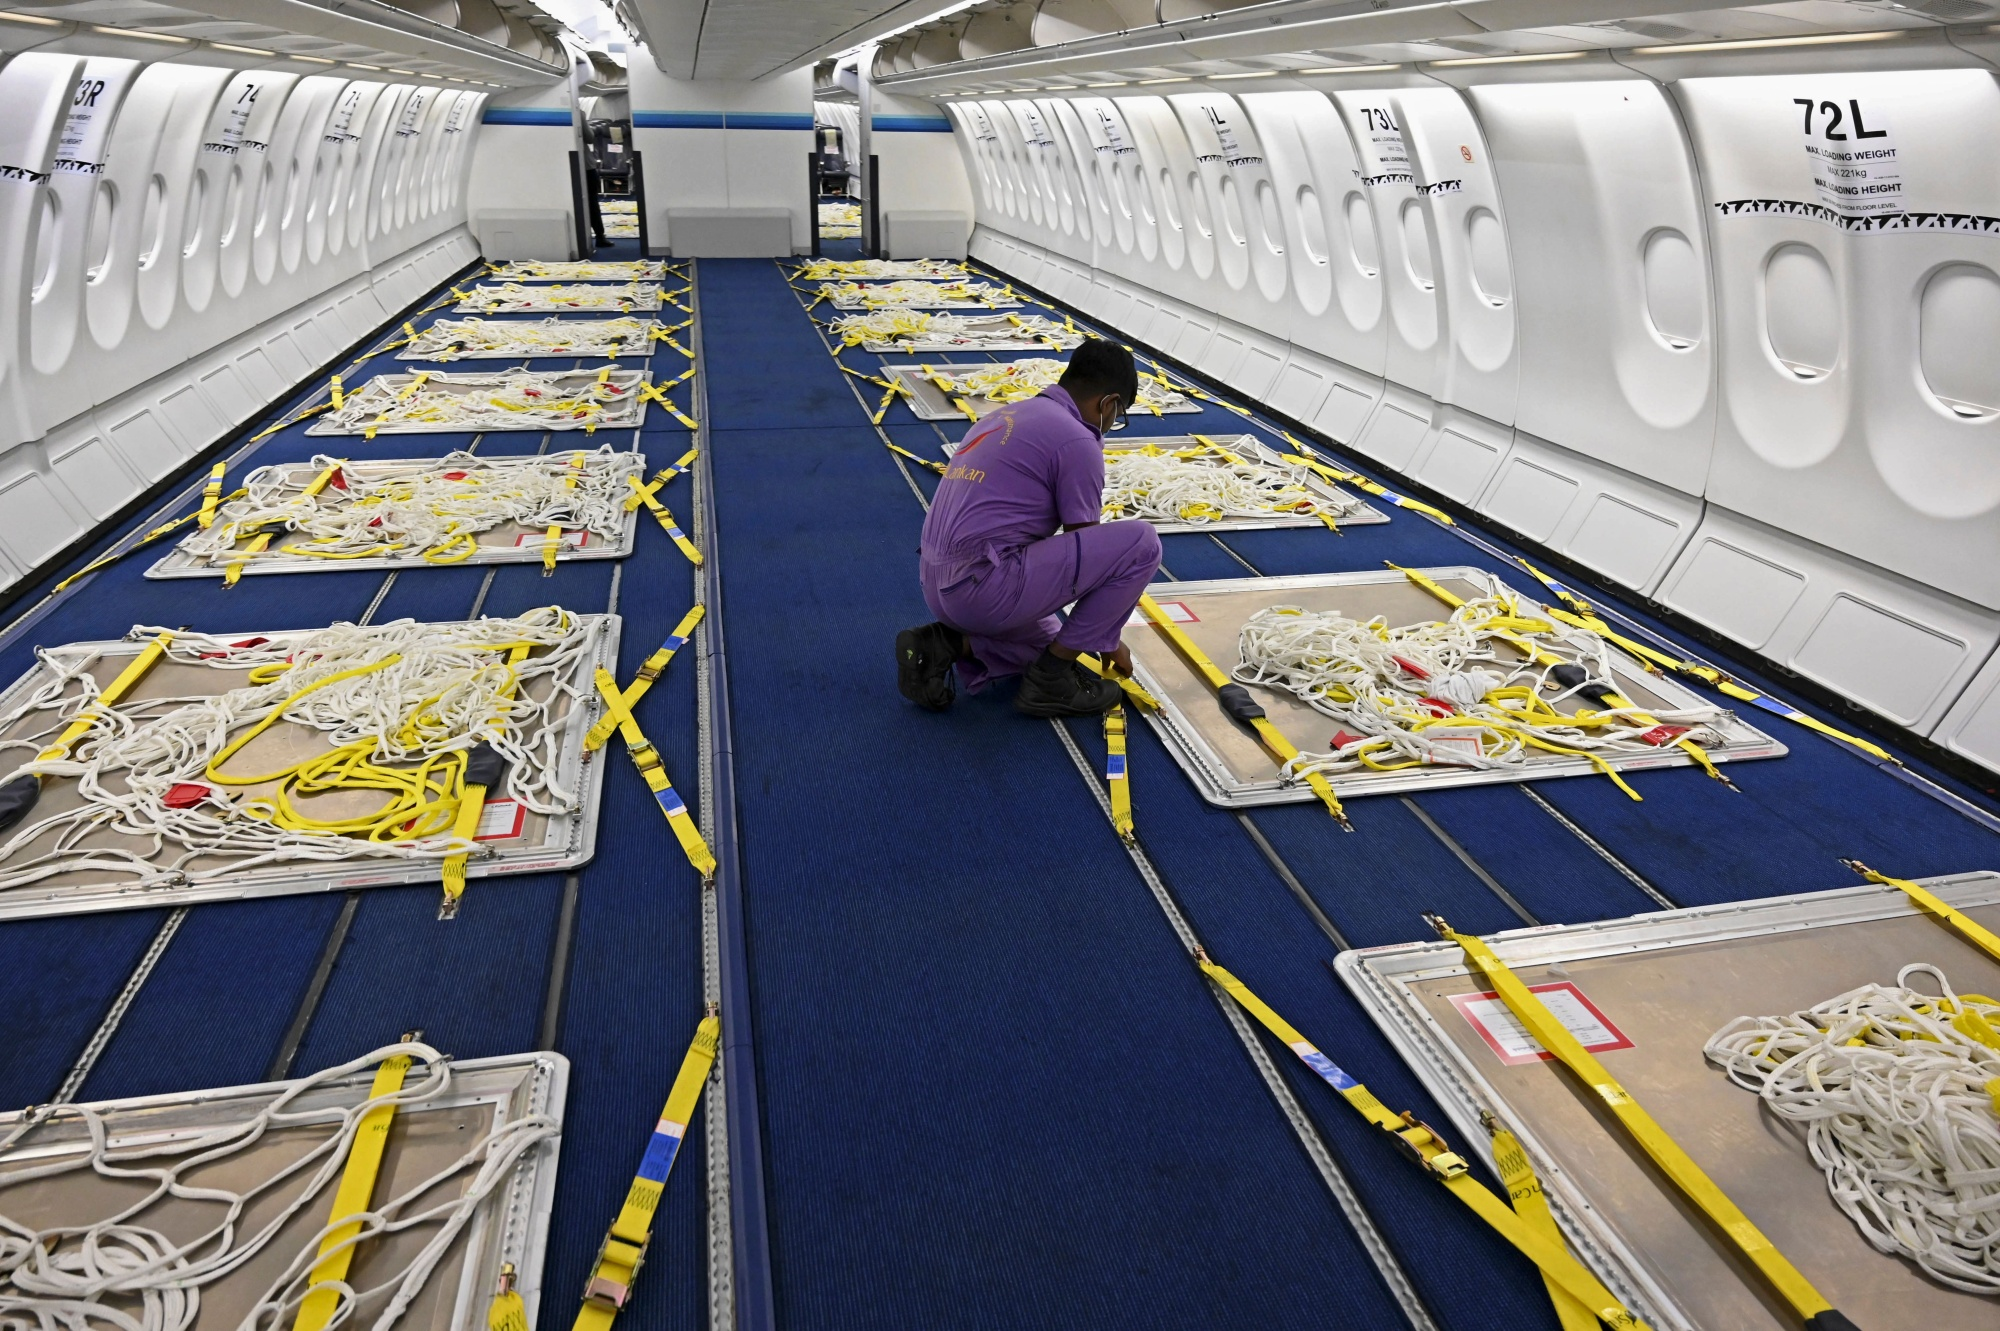 A Sri Lankan Airlines worker gives final touches to an Airbus A330 passenger aircraft, converted into a cargo carrier, in June 2020.